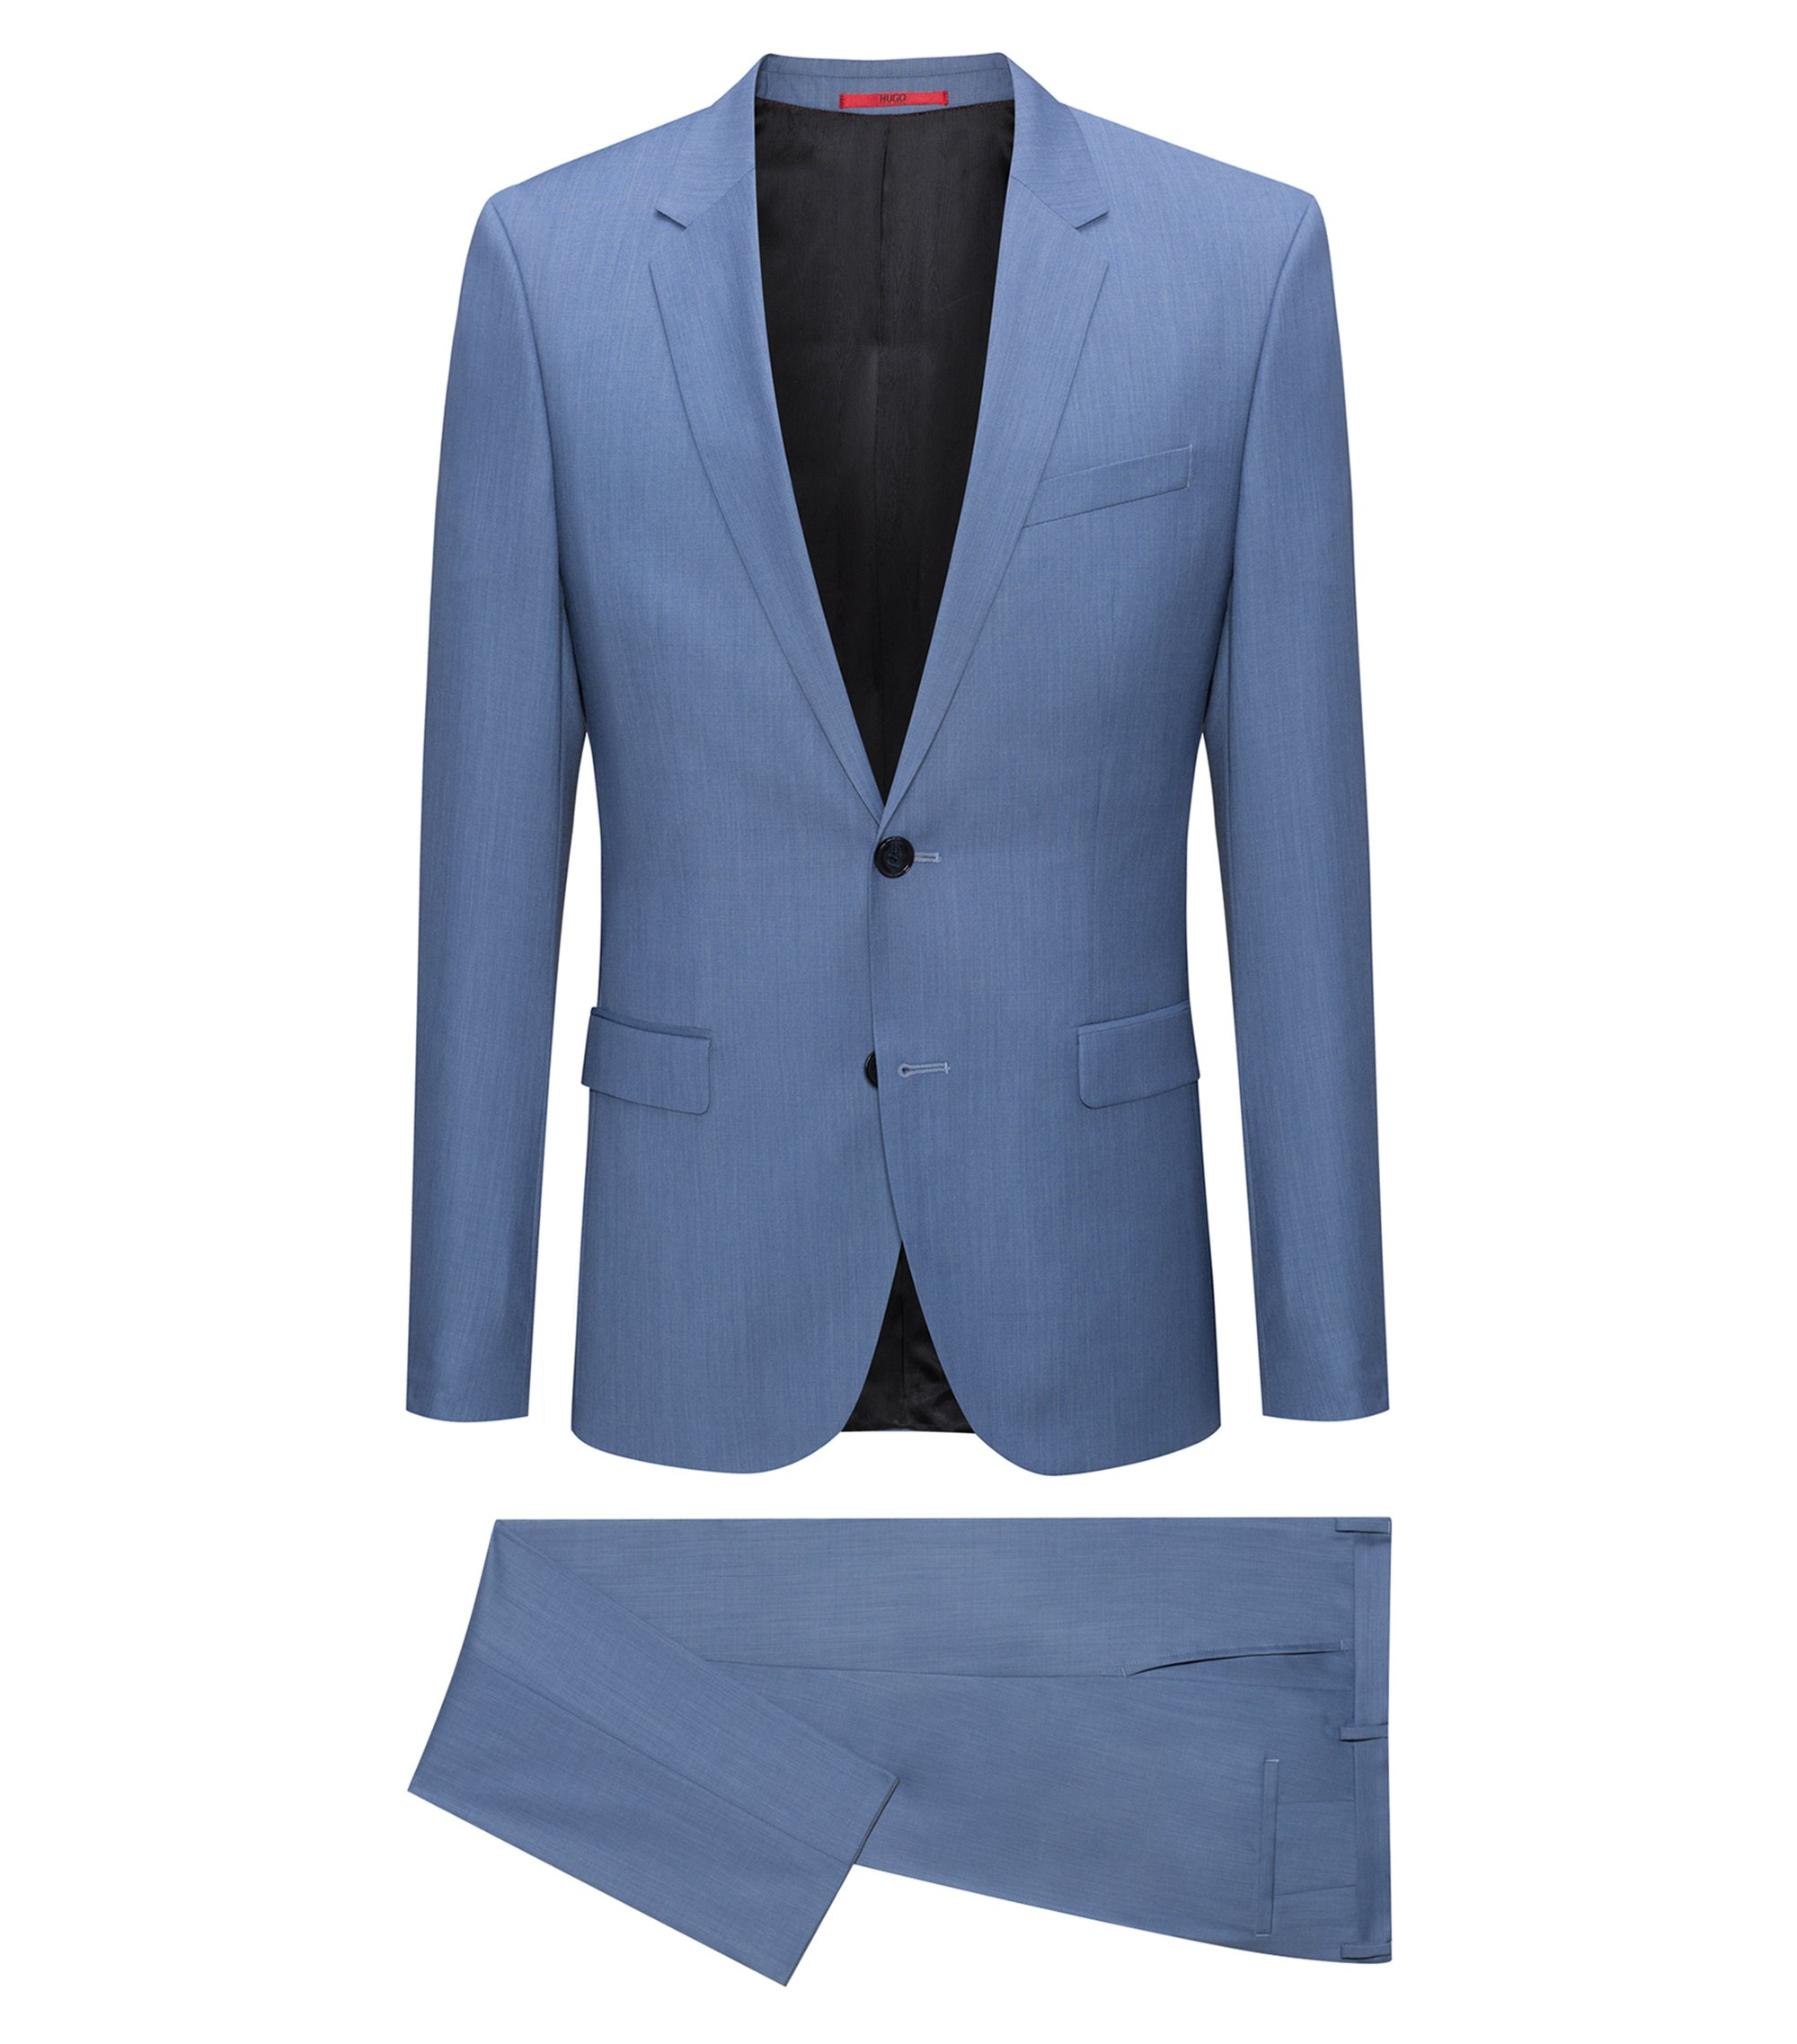 Costume Extra Slim Fit en laine vierge chinée, Turquoise